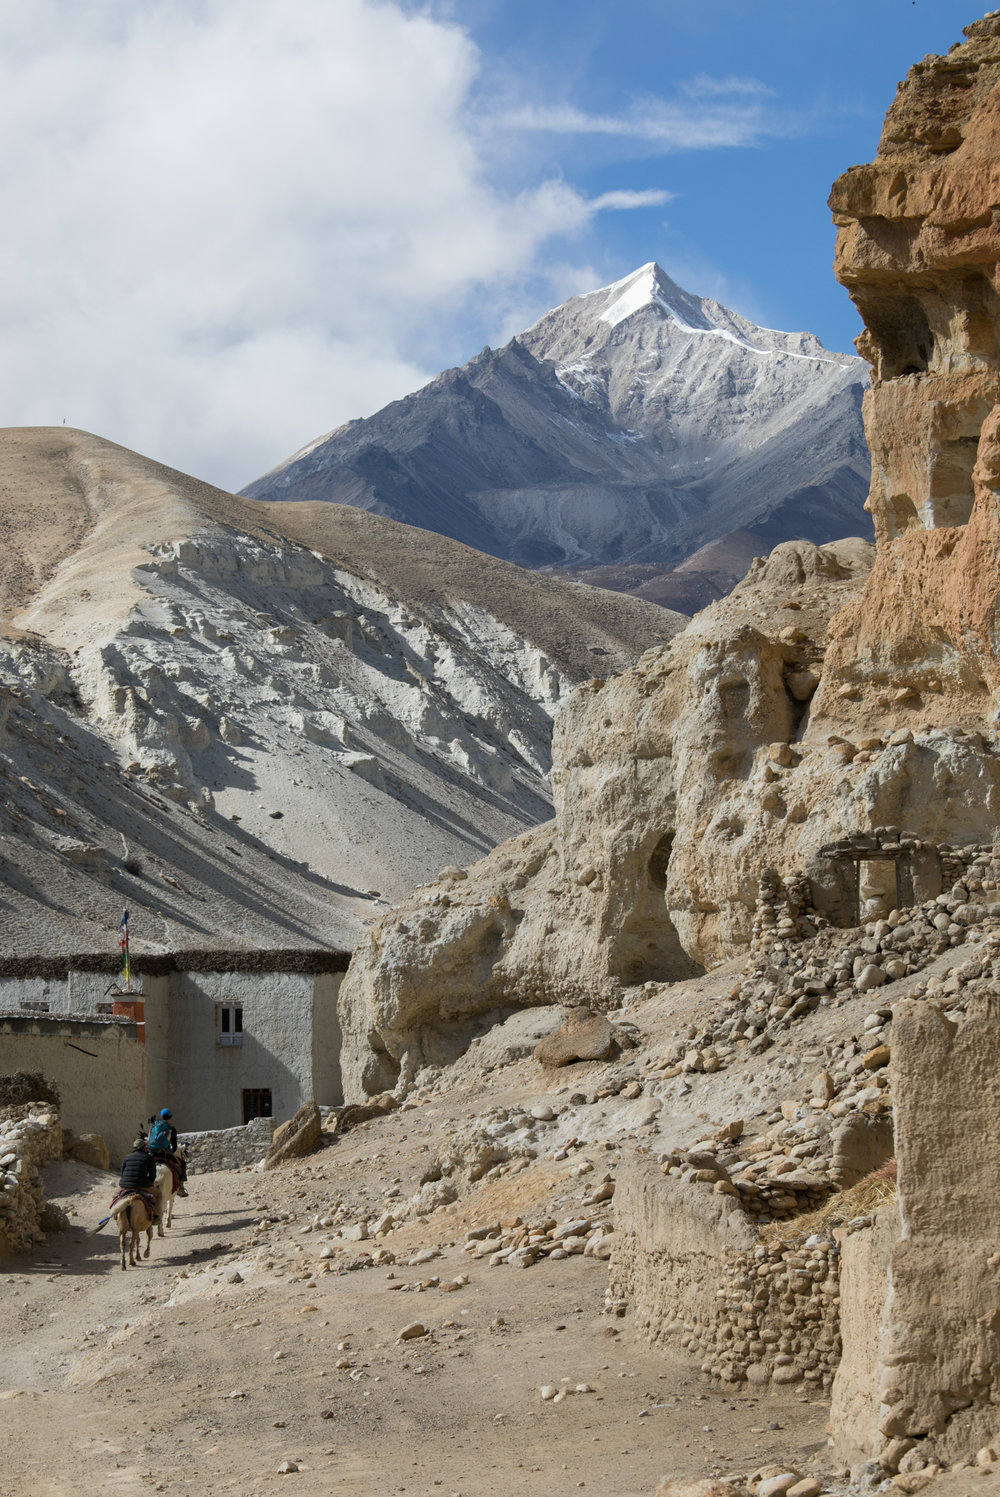 A tourist and guide ride through the Chosar valley.